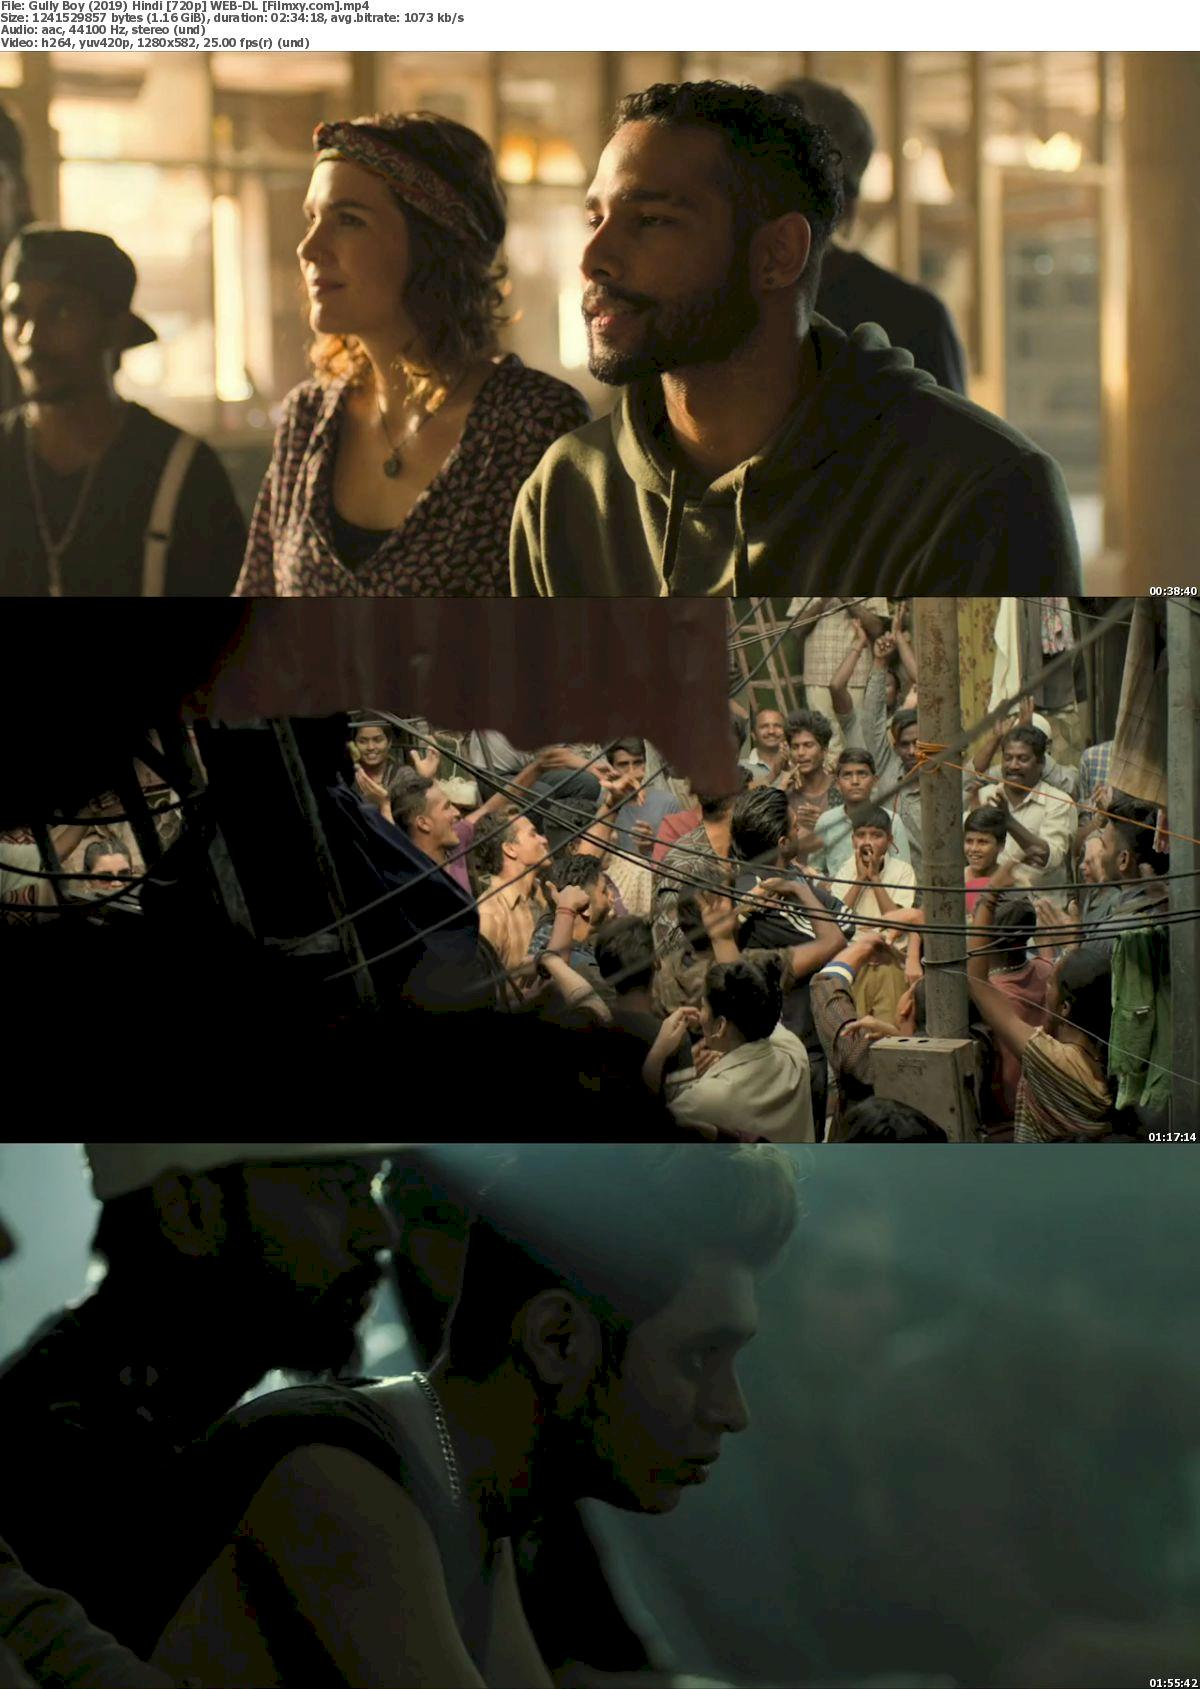 Gully Boy (2019) Hindi [720p & 1080p] WEB-DL Free Movie Watch Online & Download 720p Screenshot